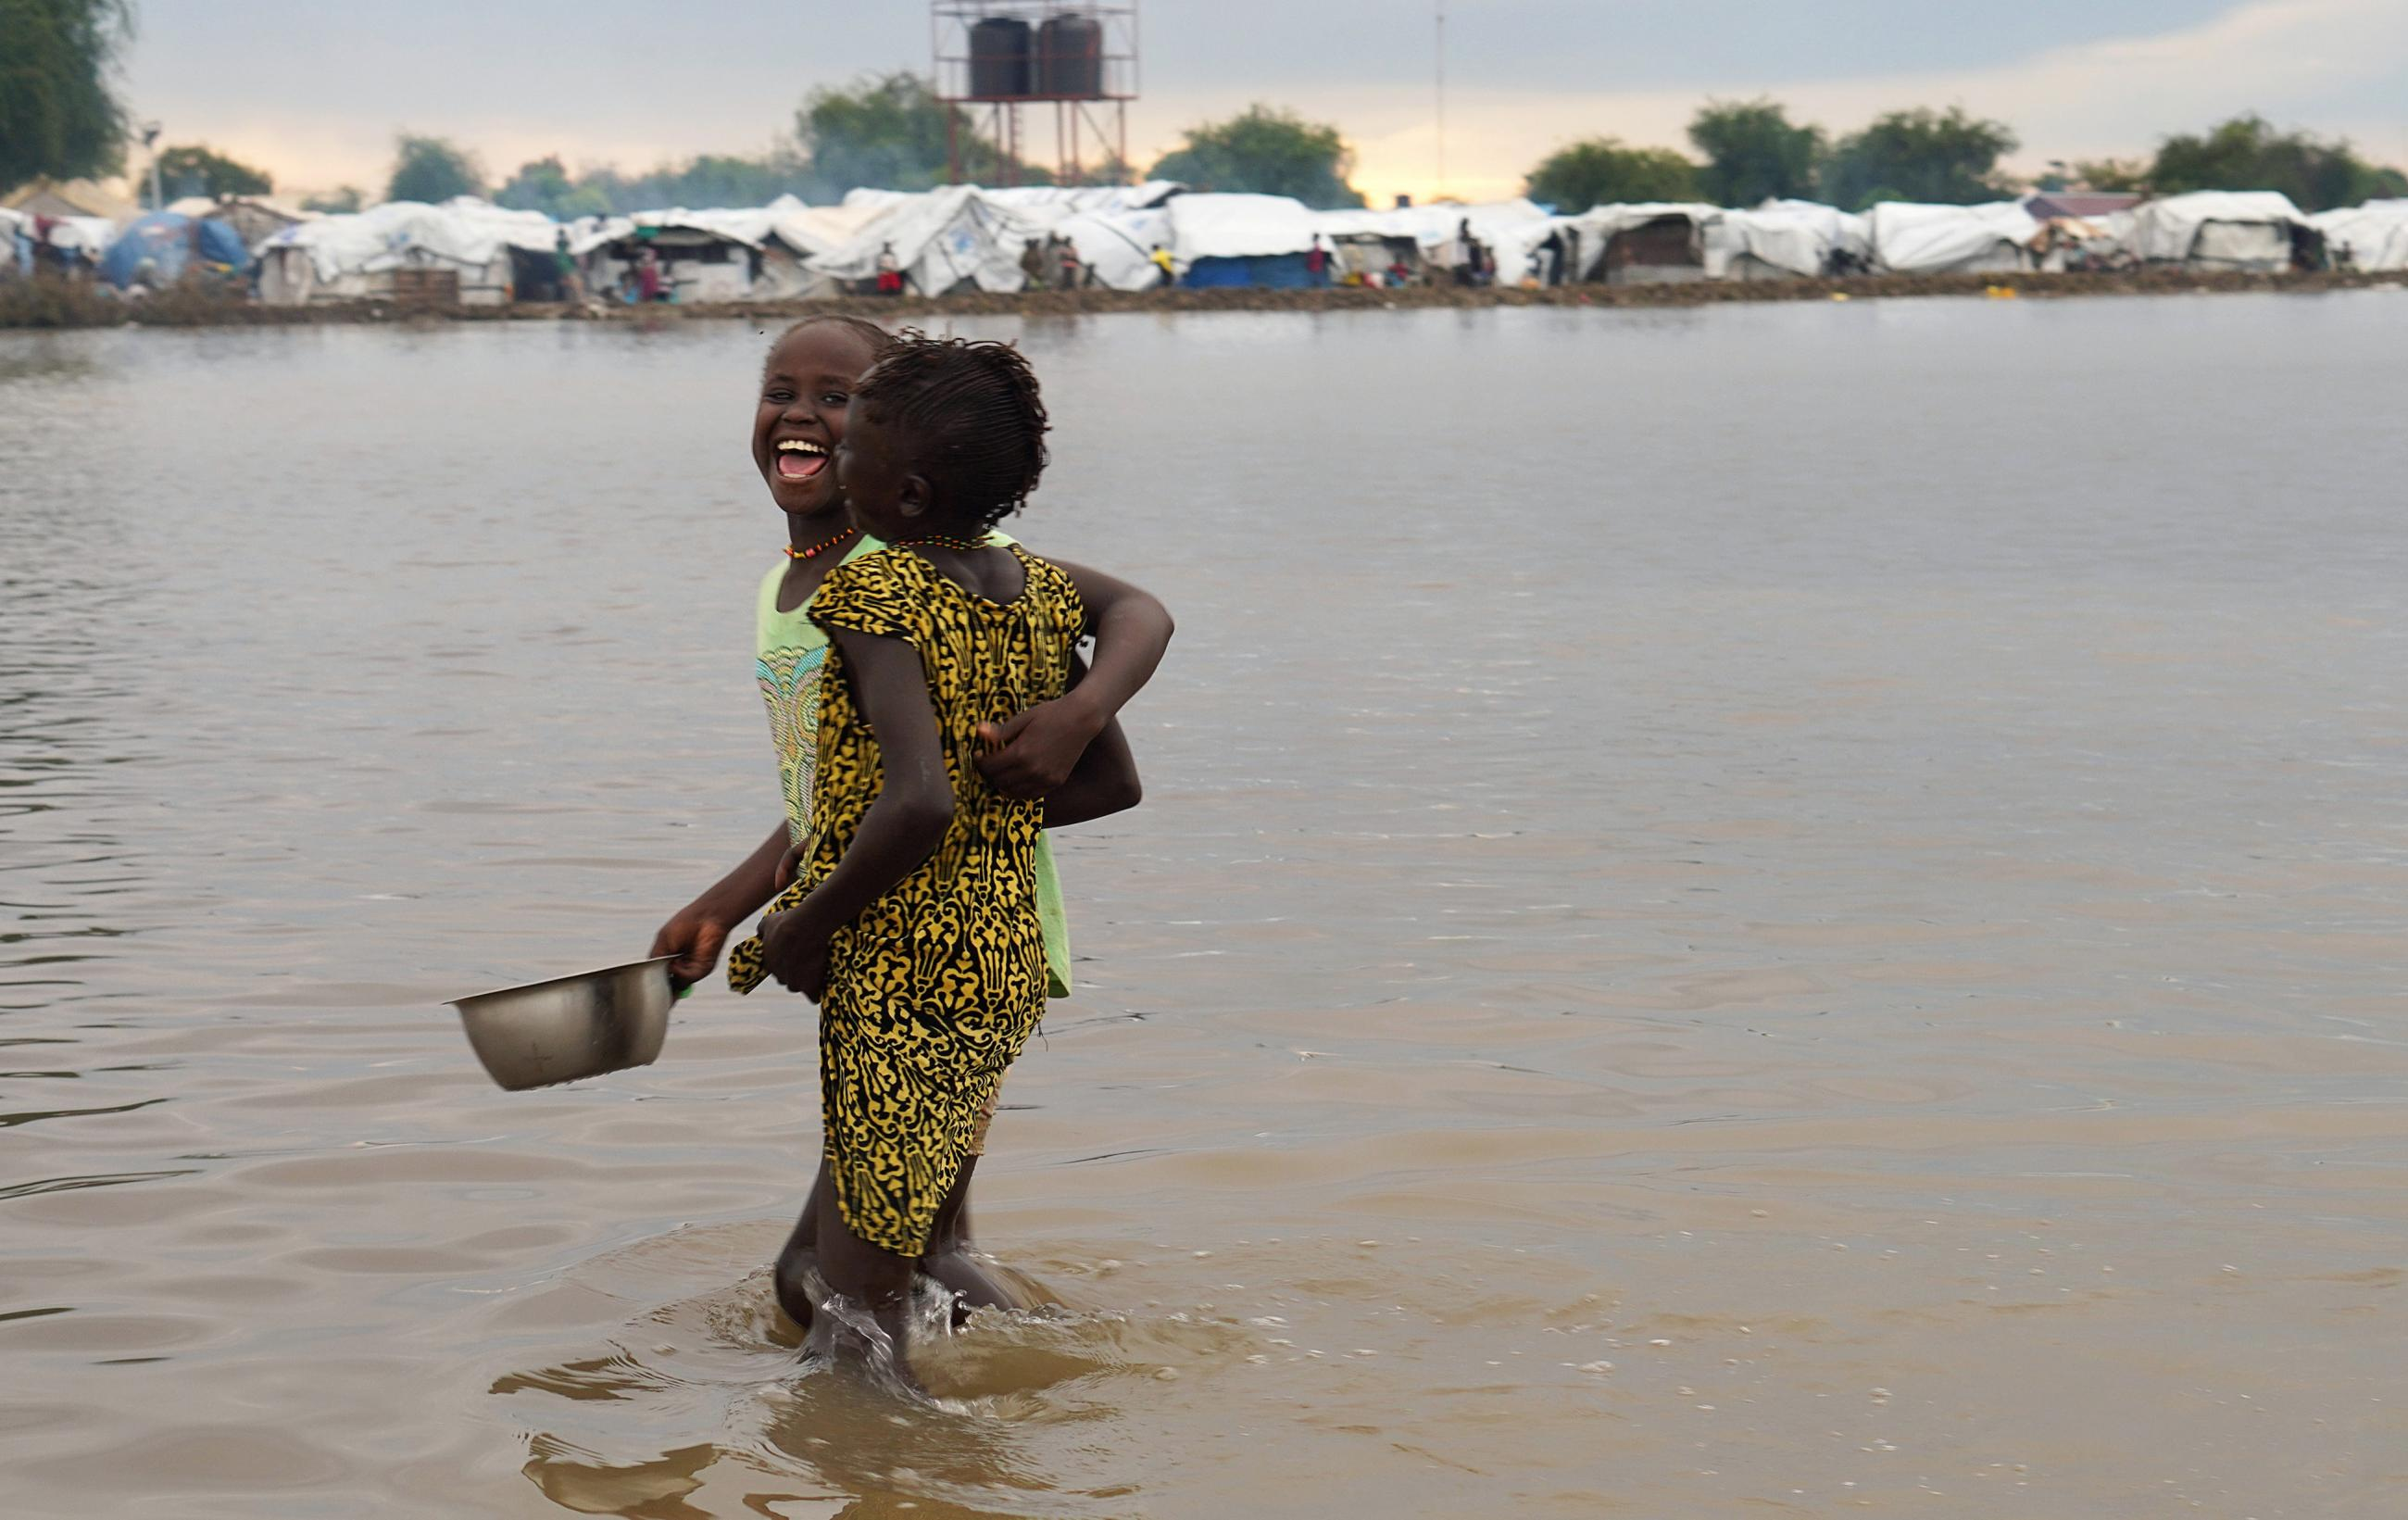 Displaced children laugh as they wade through floodwaters after the River Nile broke the dykes in Pibor, Greater Pibor Administrative Area, South Sudan October 6, 2020.